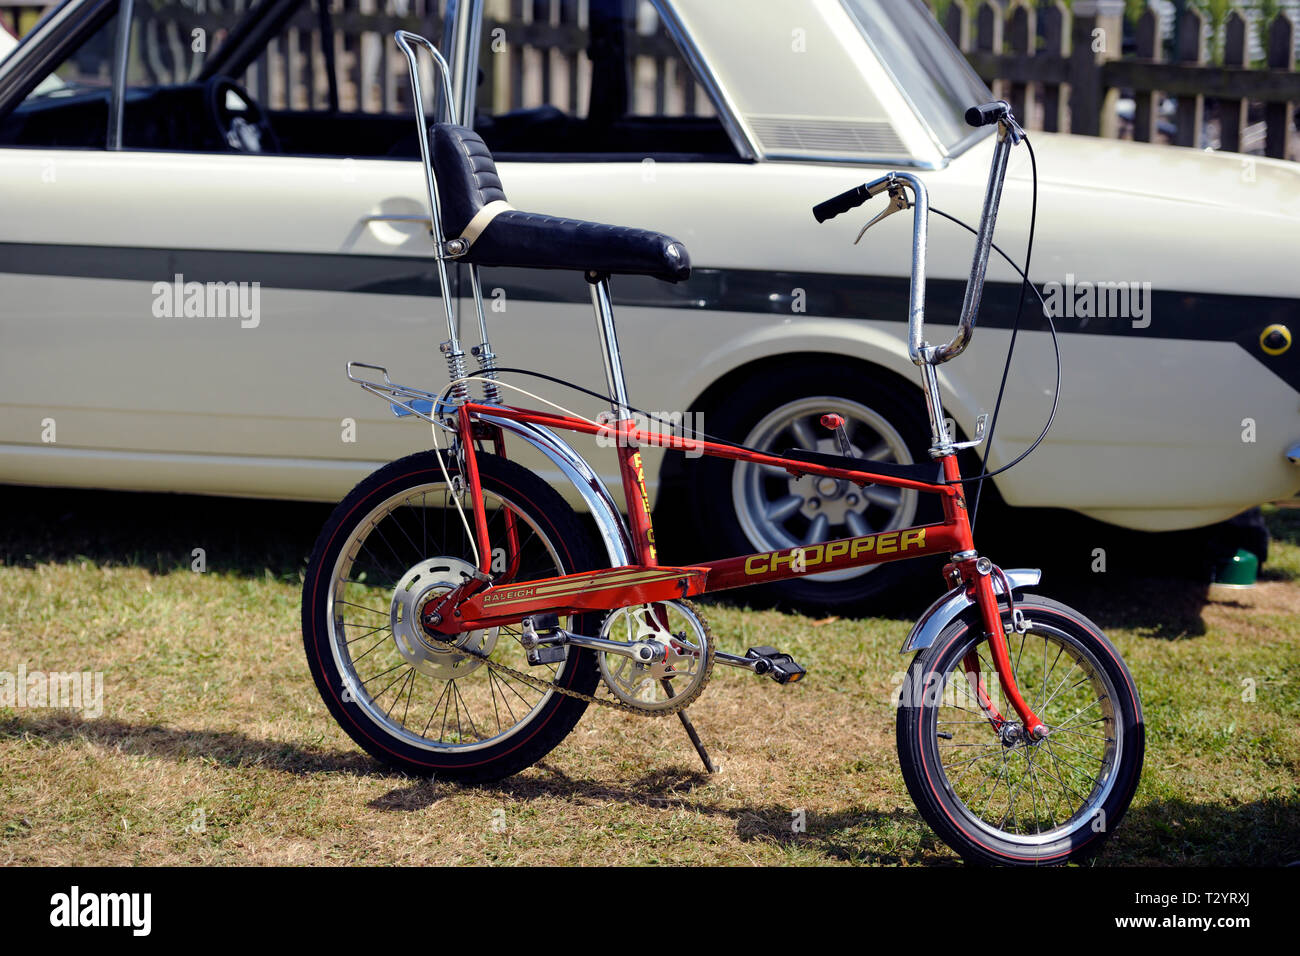 Raleigh Chopper bicycle standing beside a Ford Lotus Cortina - Stock Image